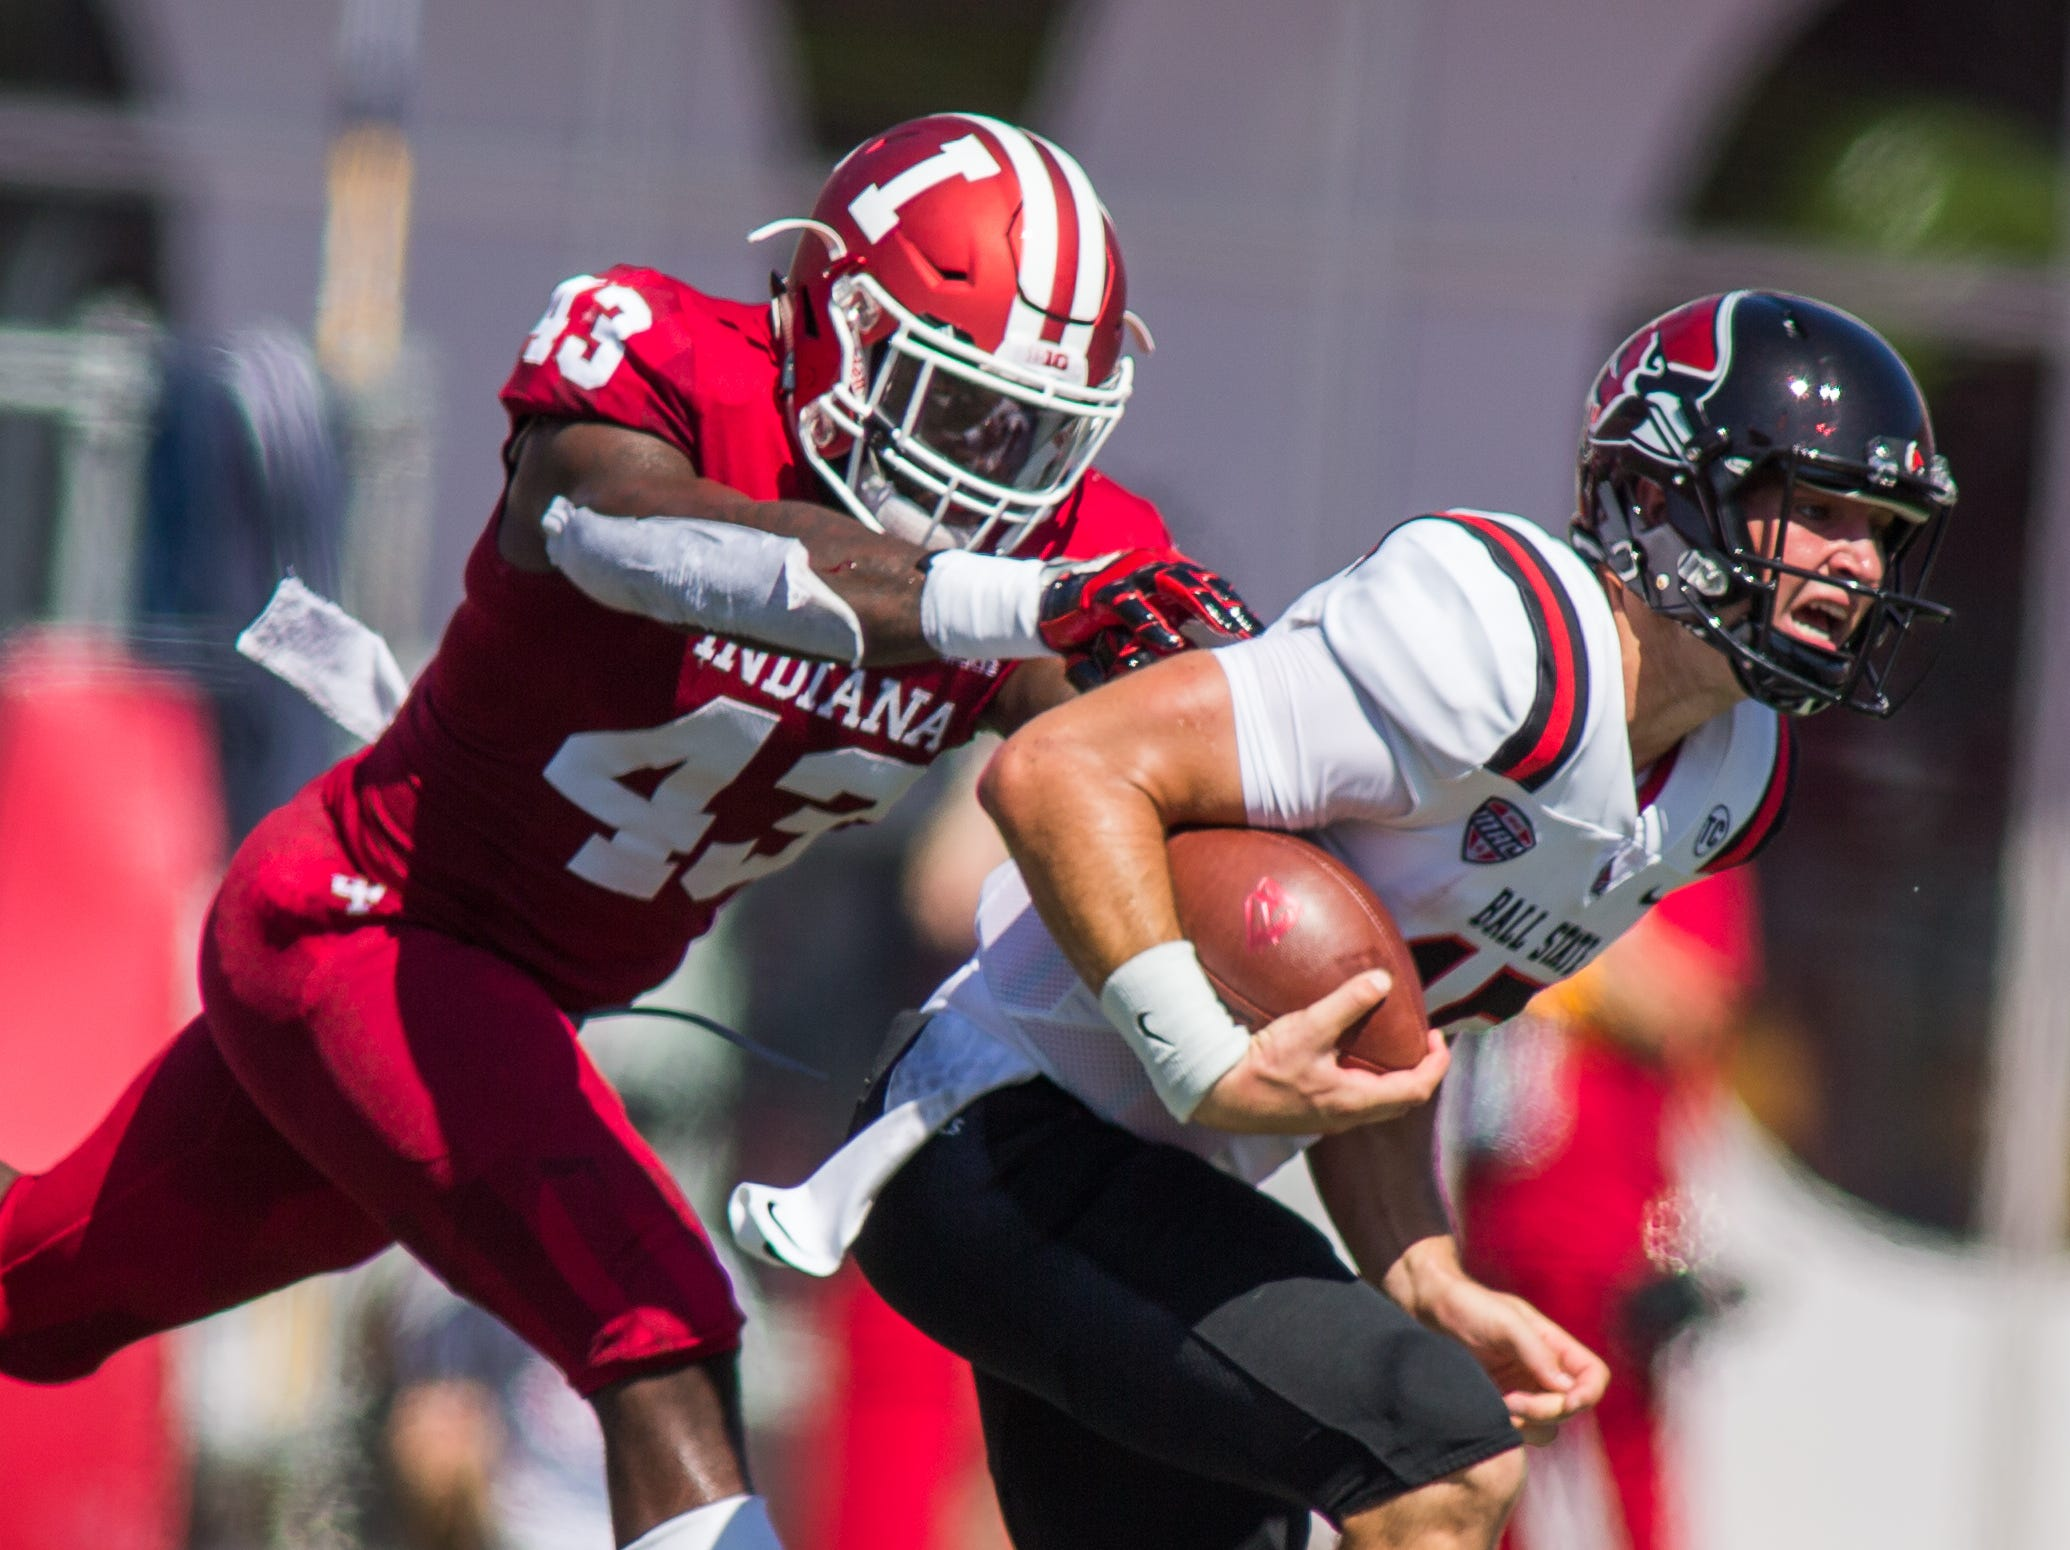 Ball State Cardinals quarterback Riley Neal (15) runs the ball and is tackled by IIndiana Hoosiers linebacker Dameon Willis Jr. (43) in the first quarter at Memorial Stadium .